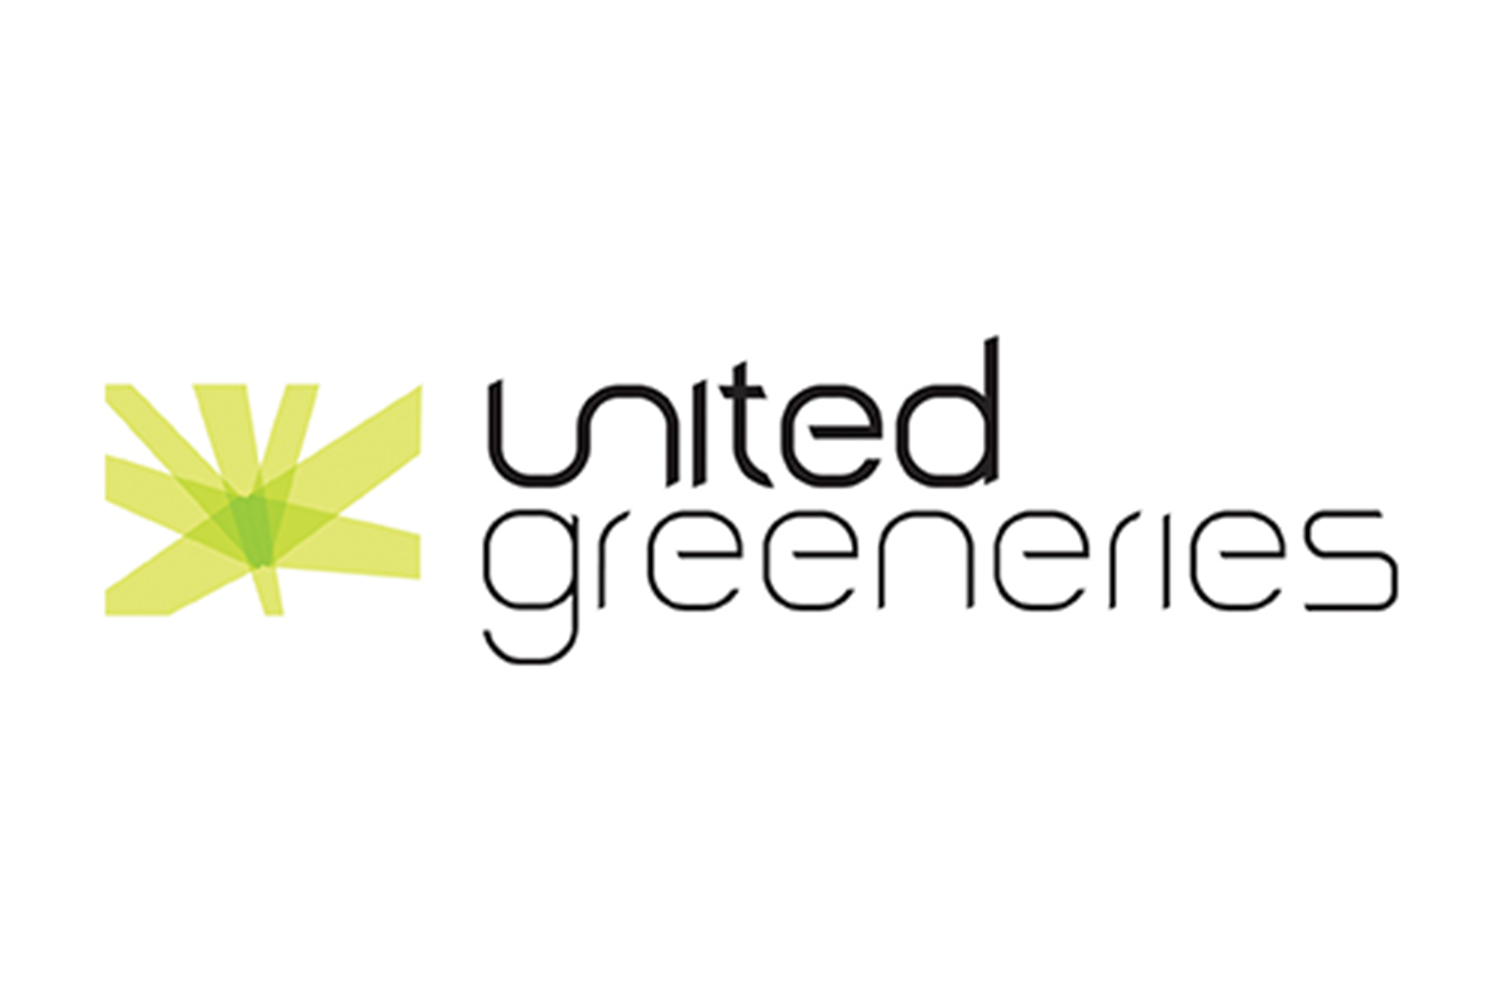 the green organic united-greeneries